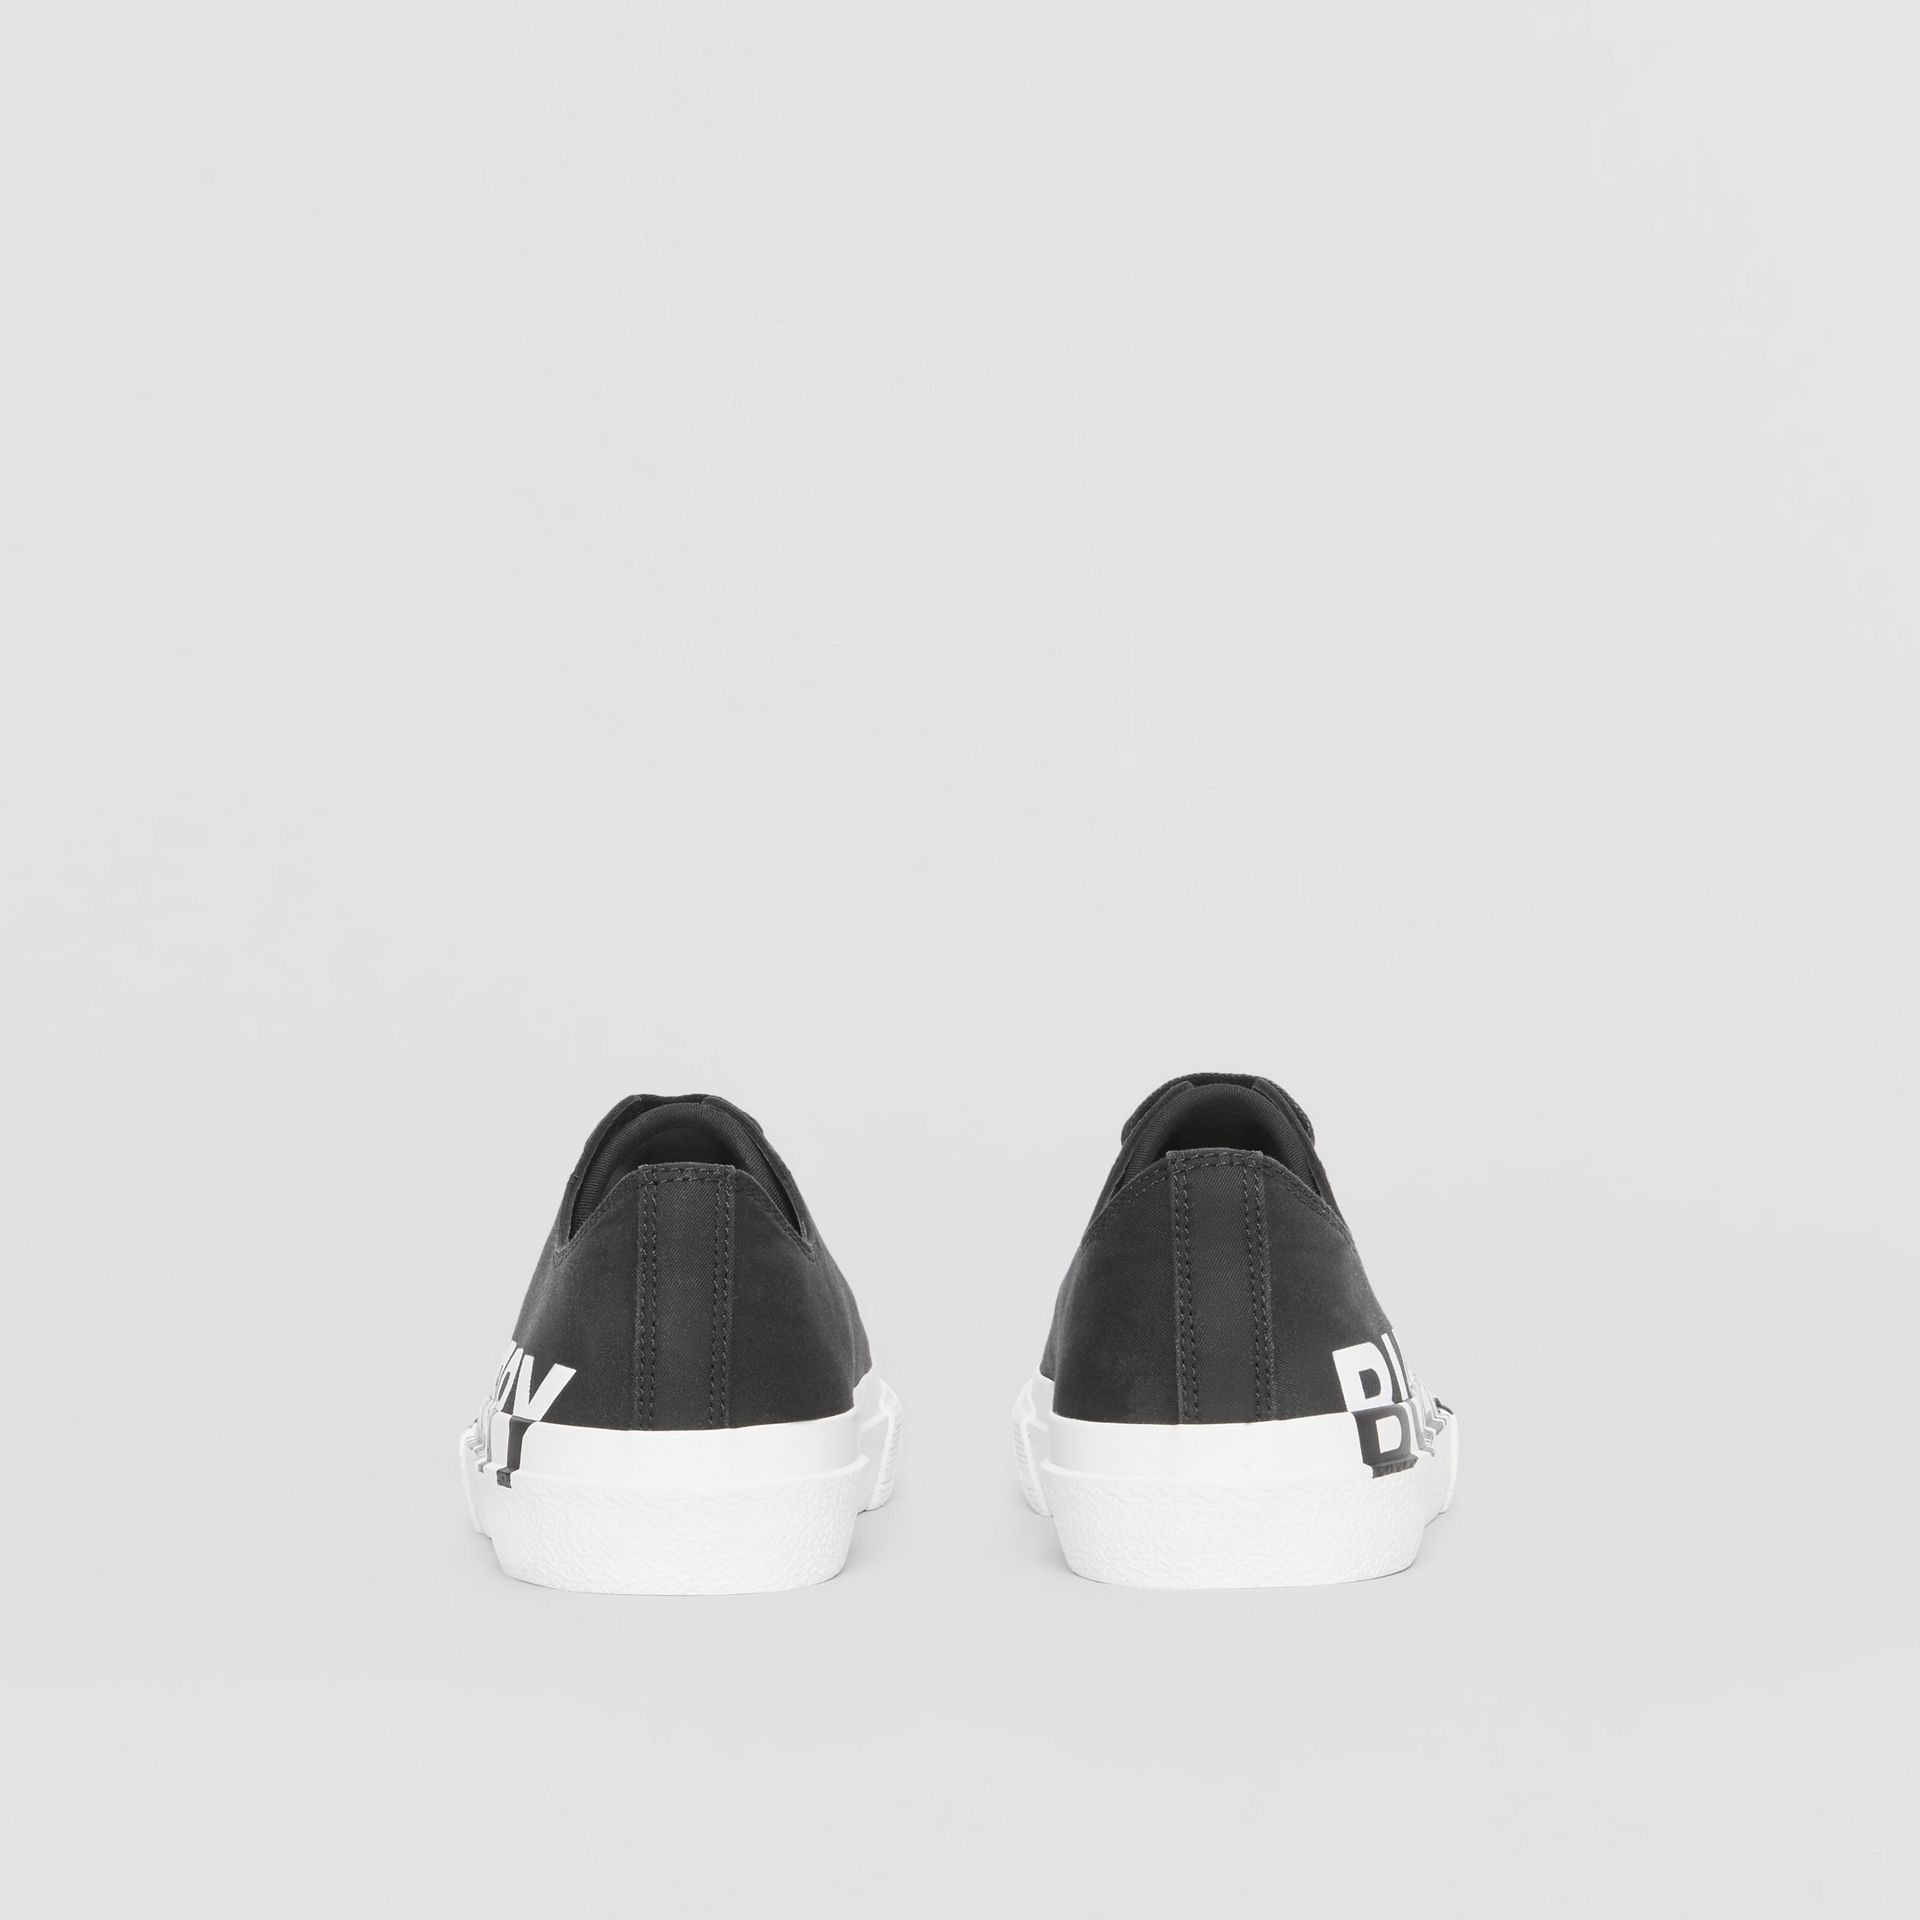 Logo Print Two-tone Cotton Gabardine Sneakers in Black/white - Women | Burberry - gallery image 4